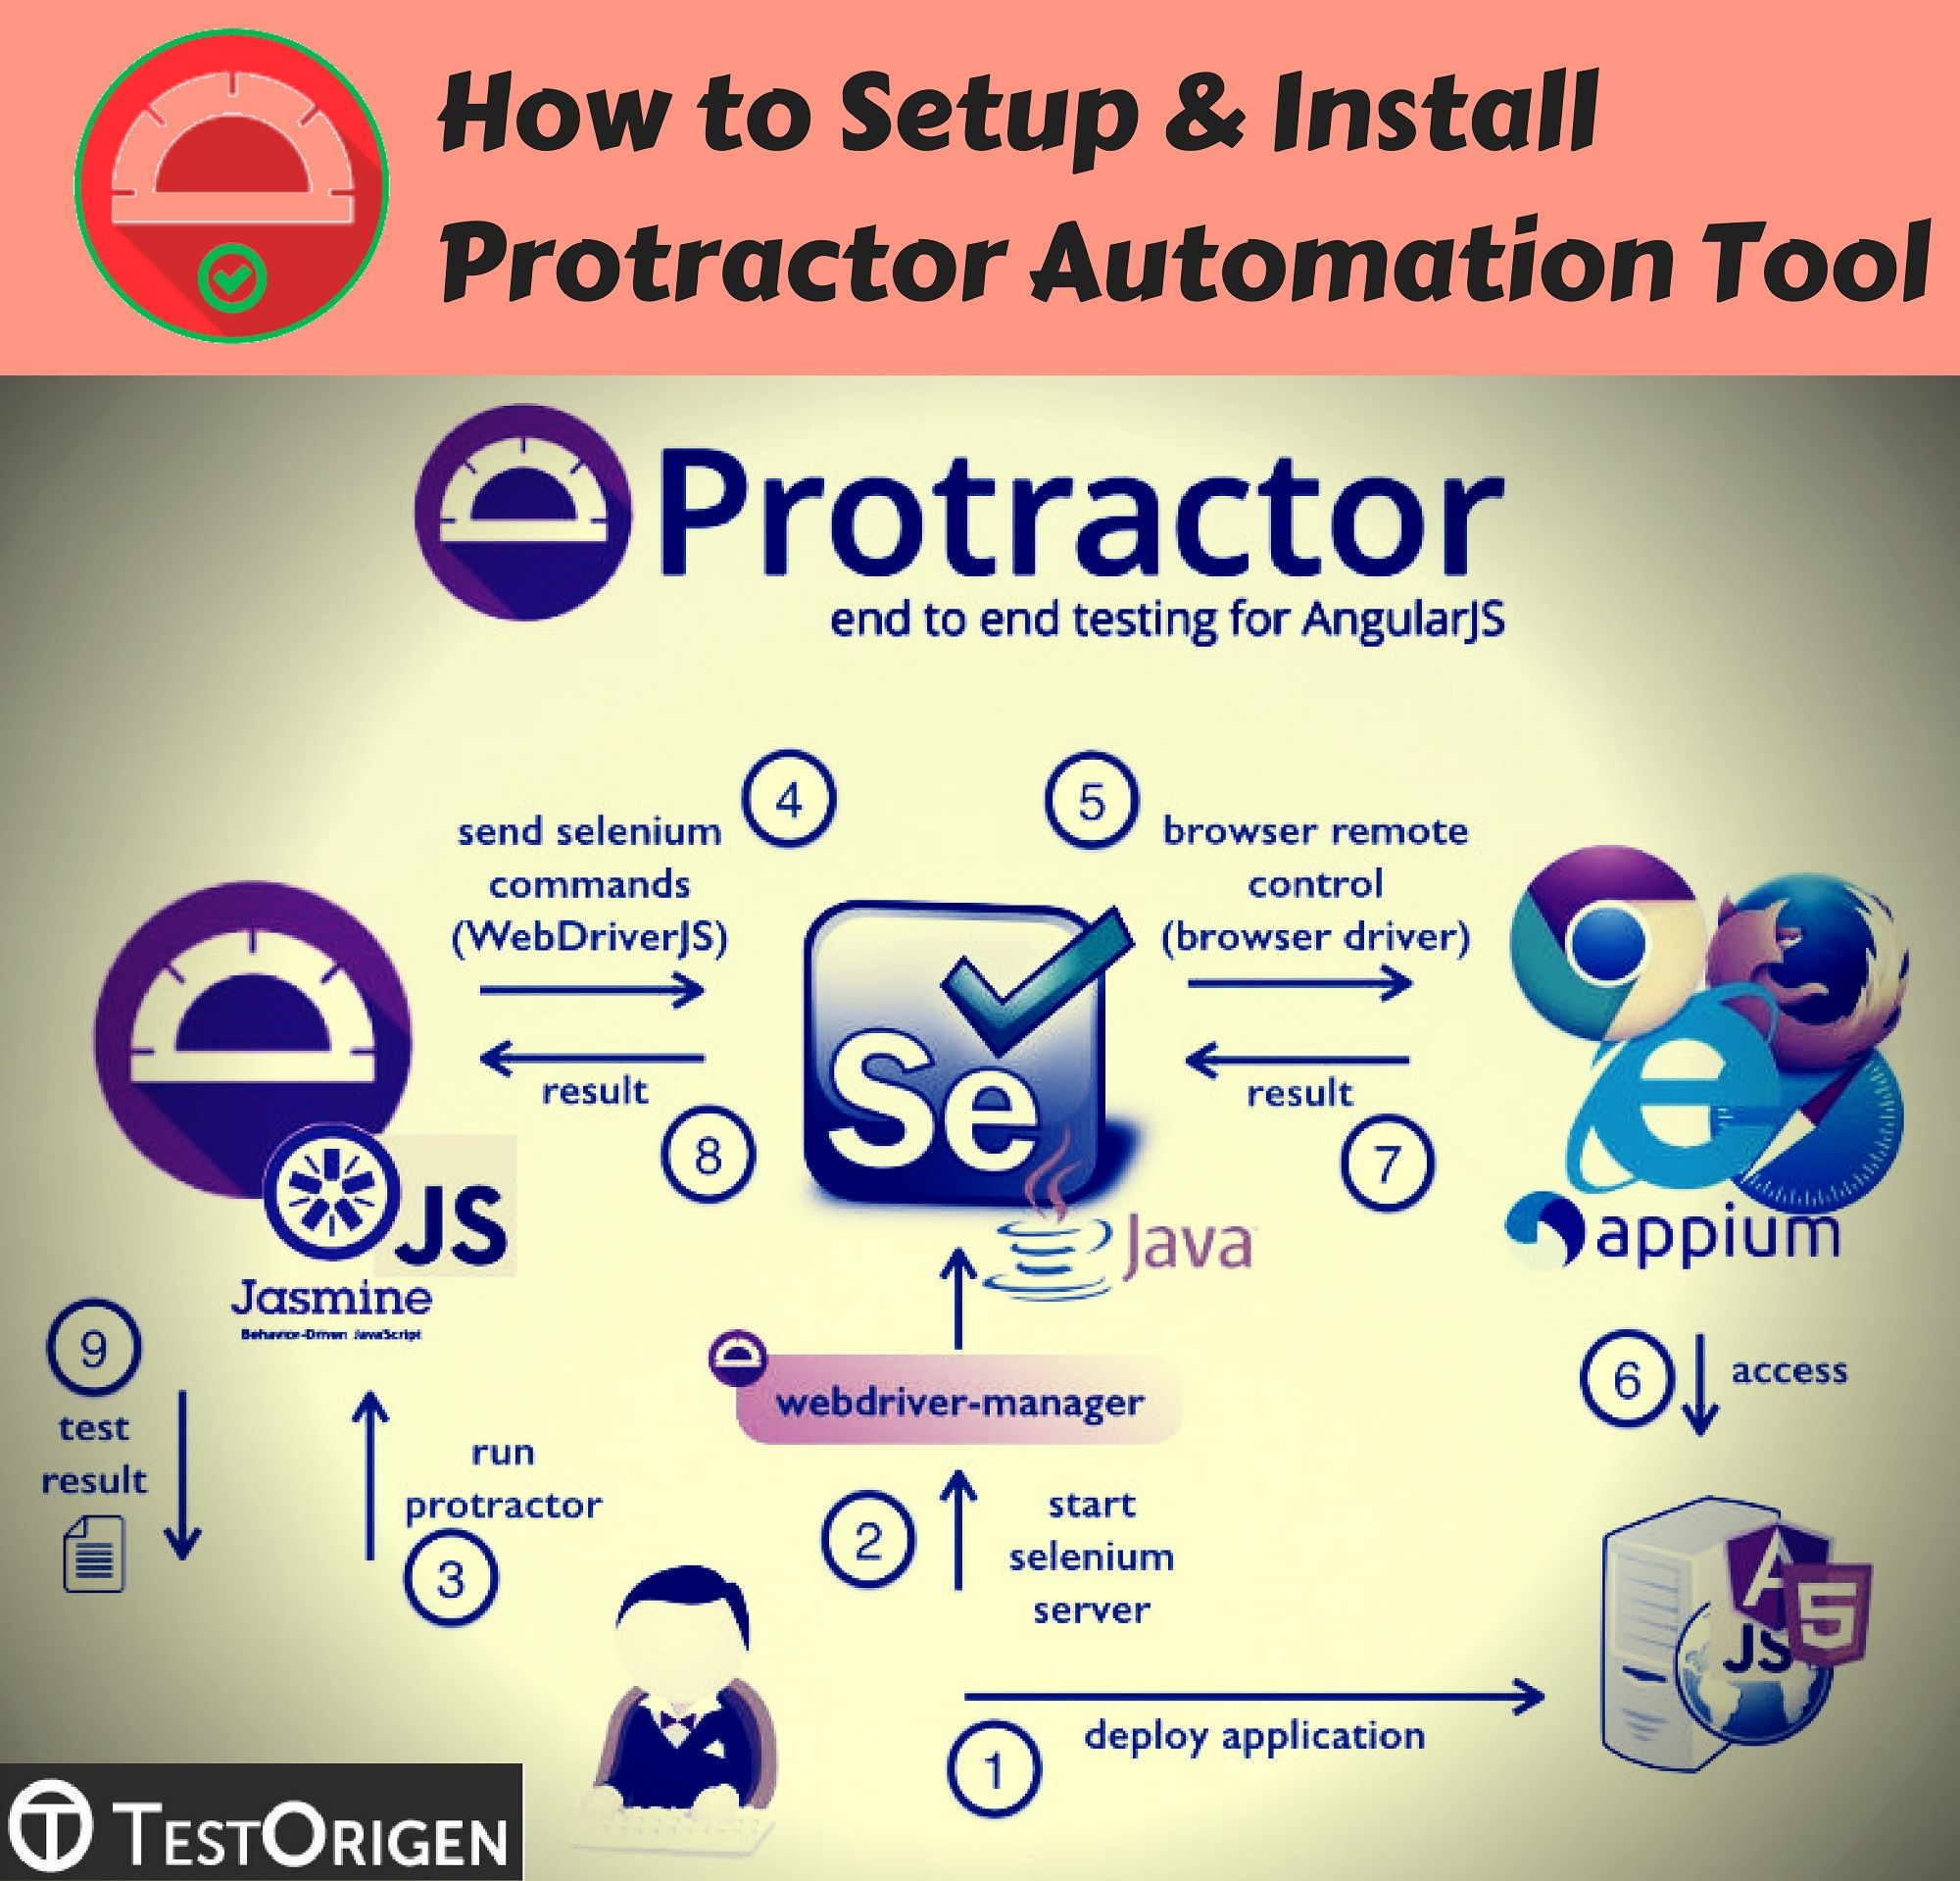 Protractor automation tool formally known as an E2E testing